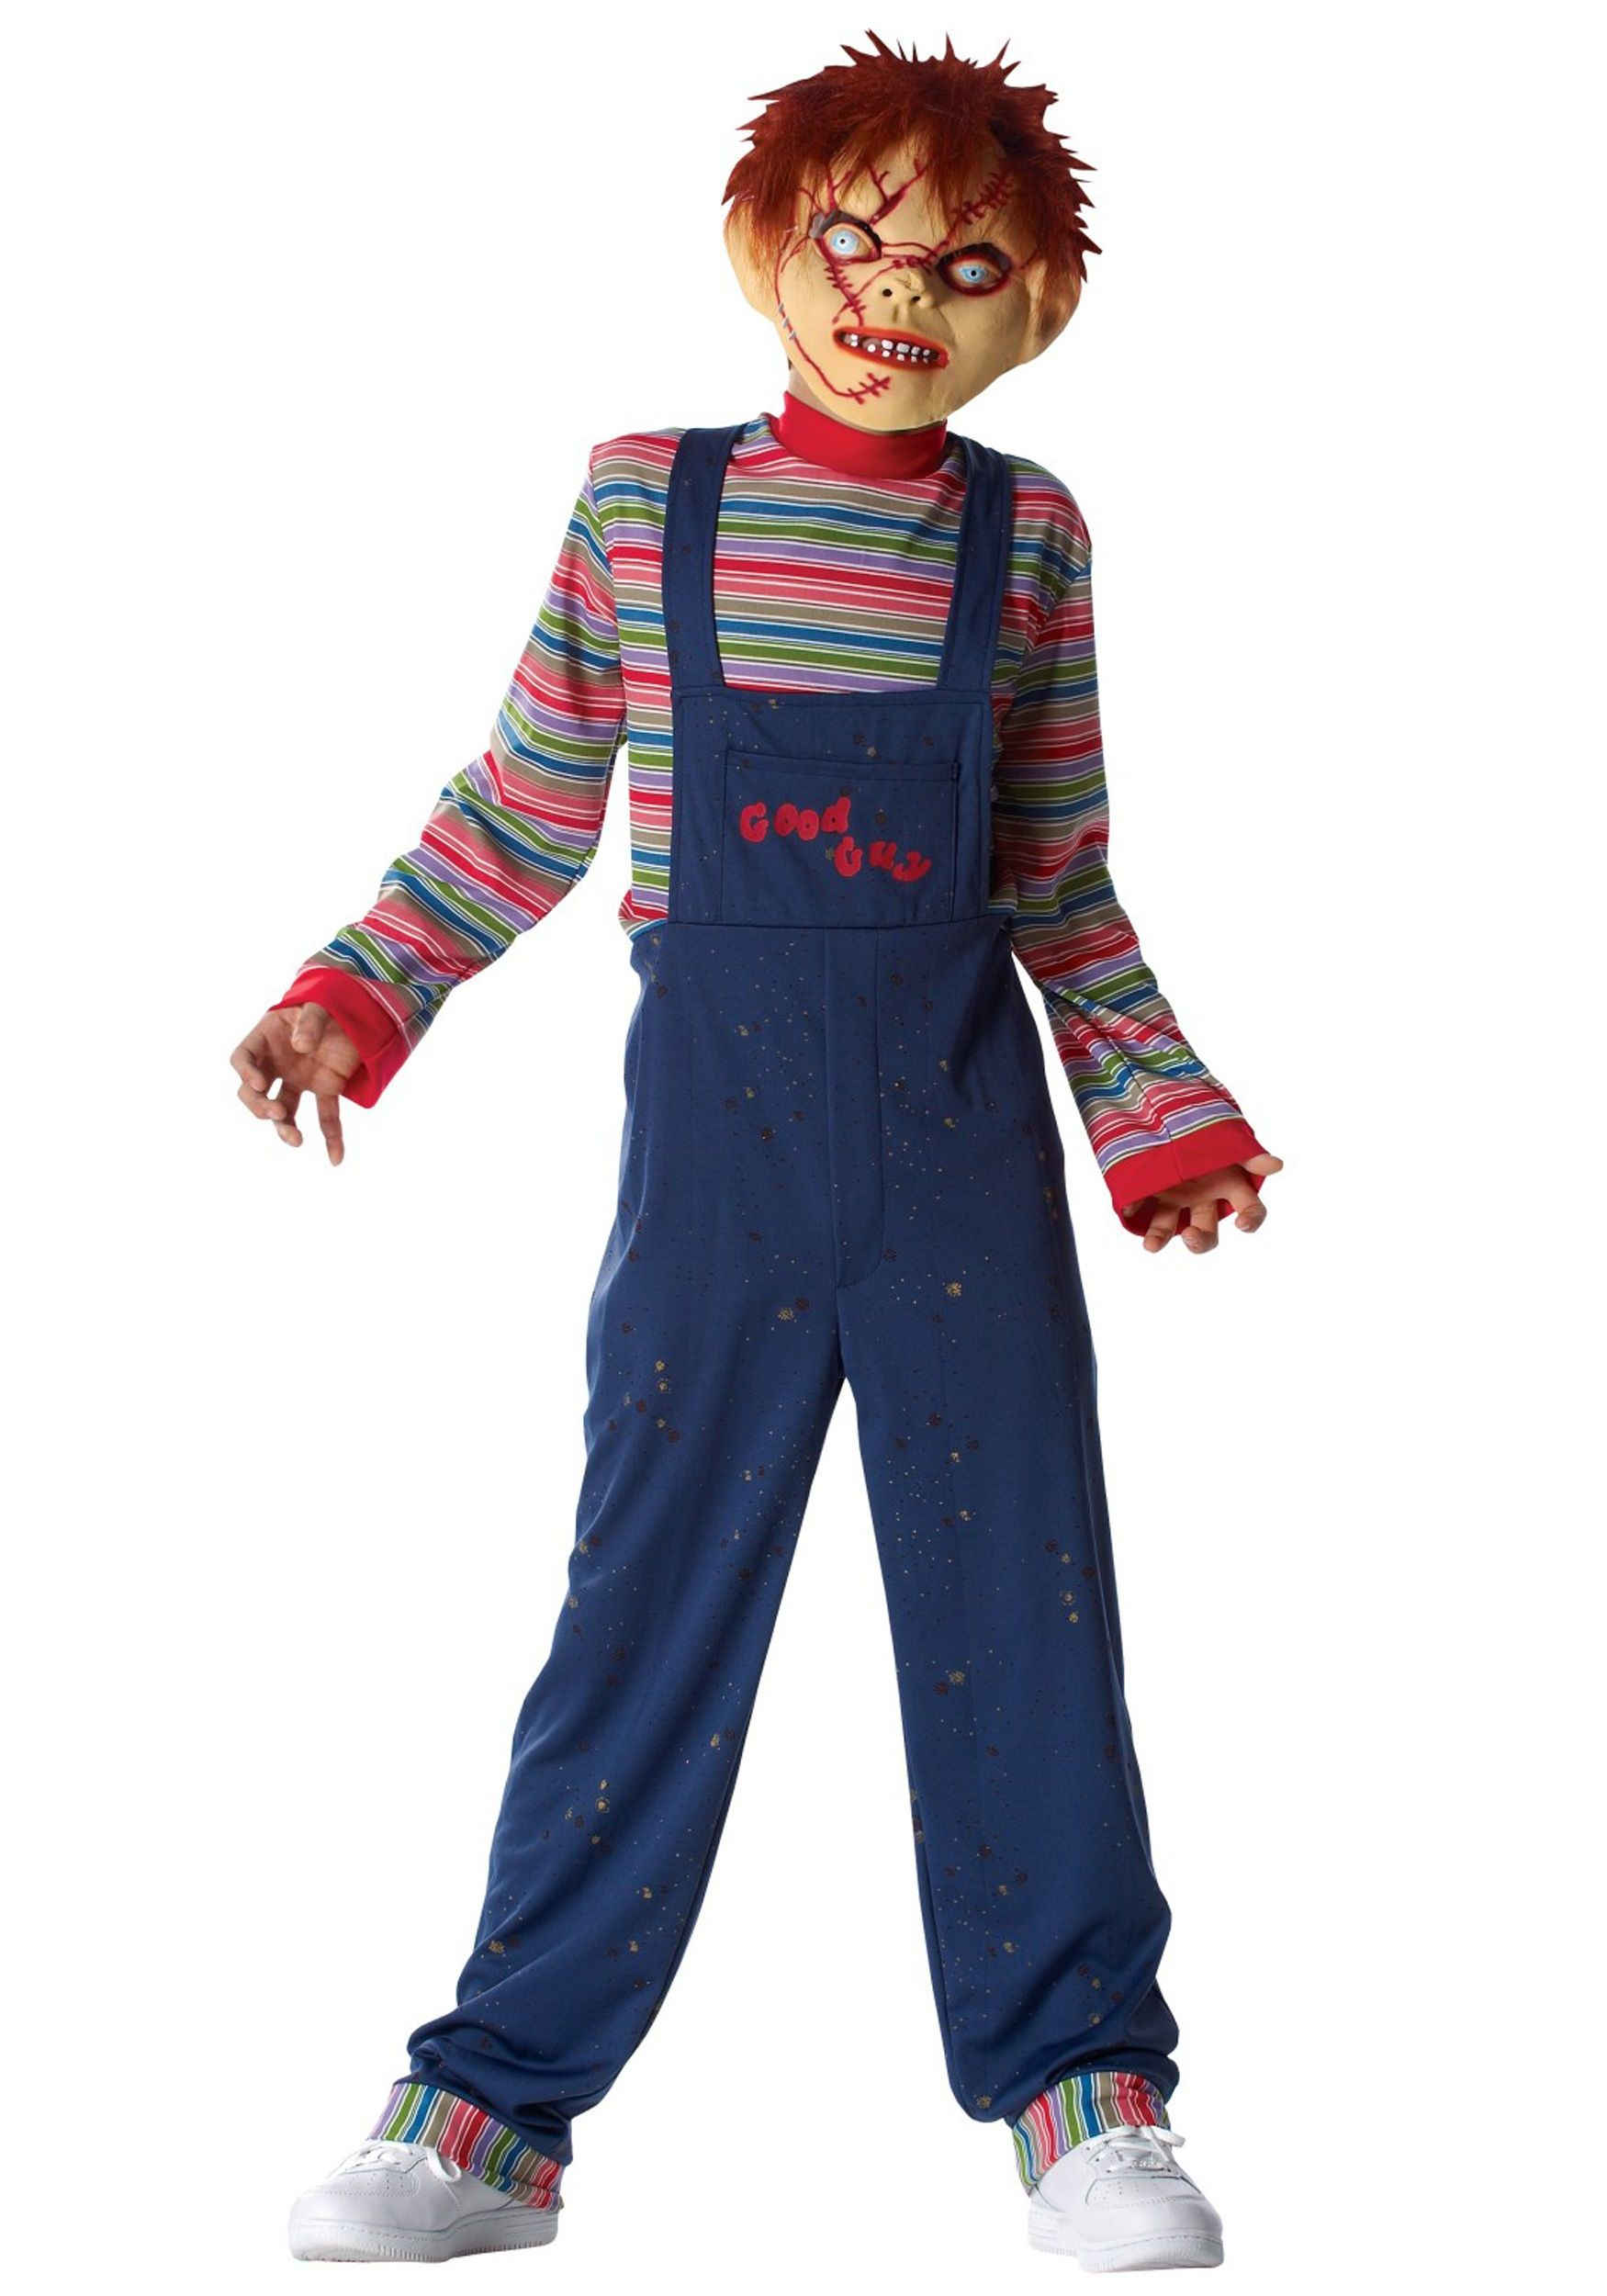 creepiest kids Home Scary Costume Ideas Chucky Costumes